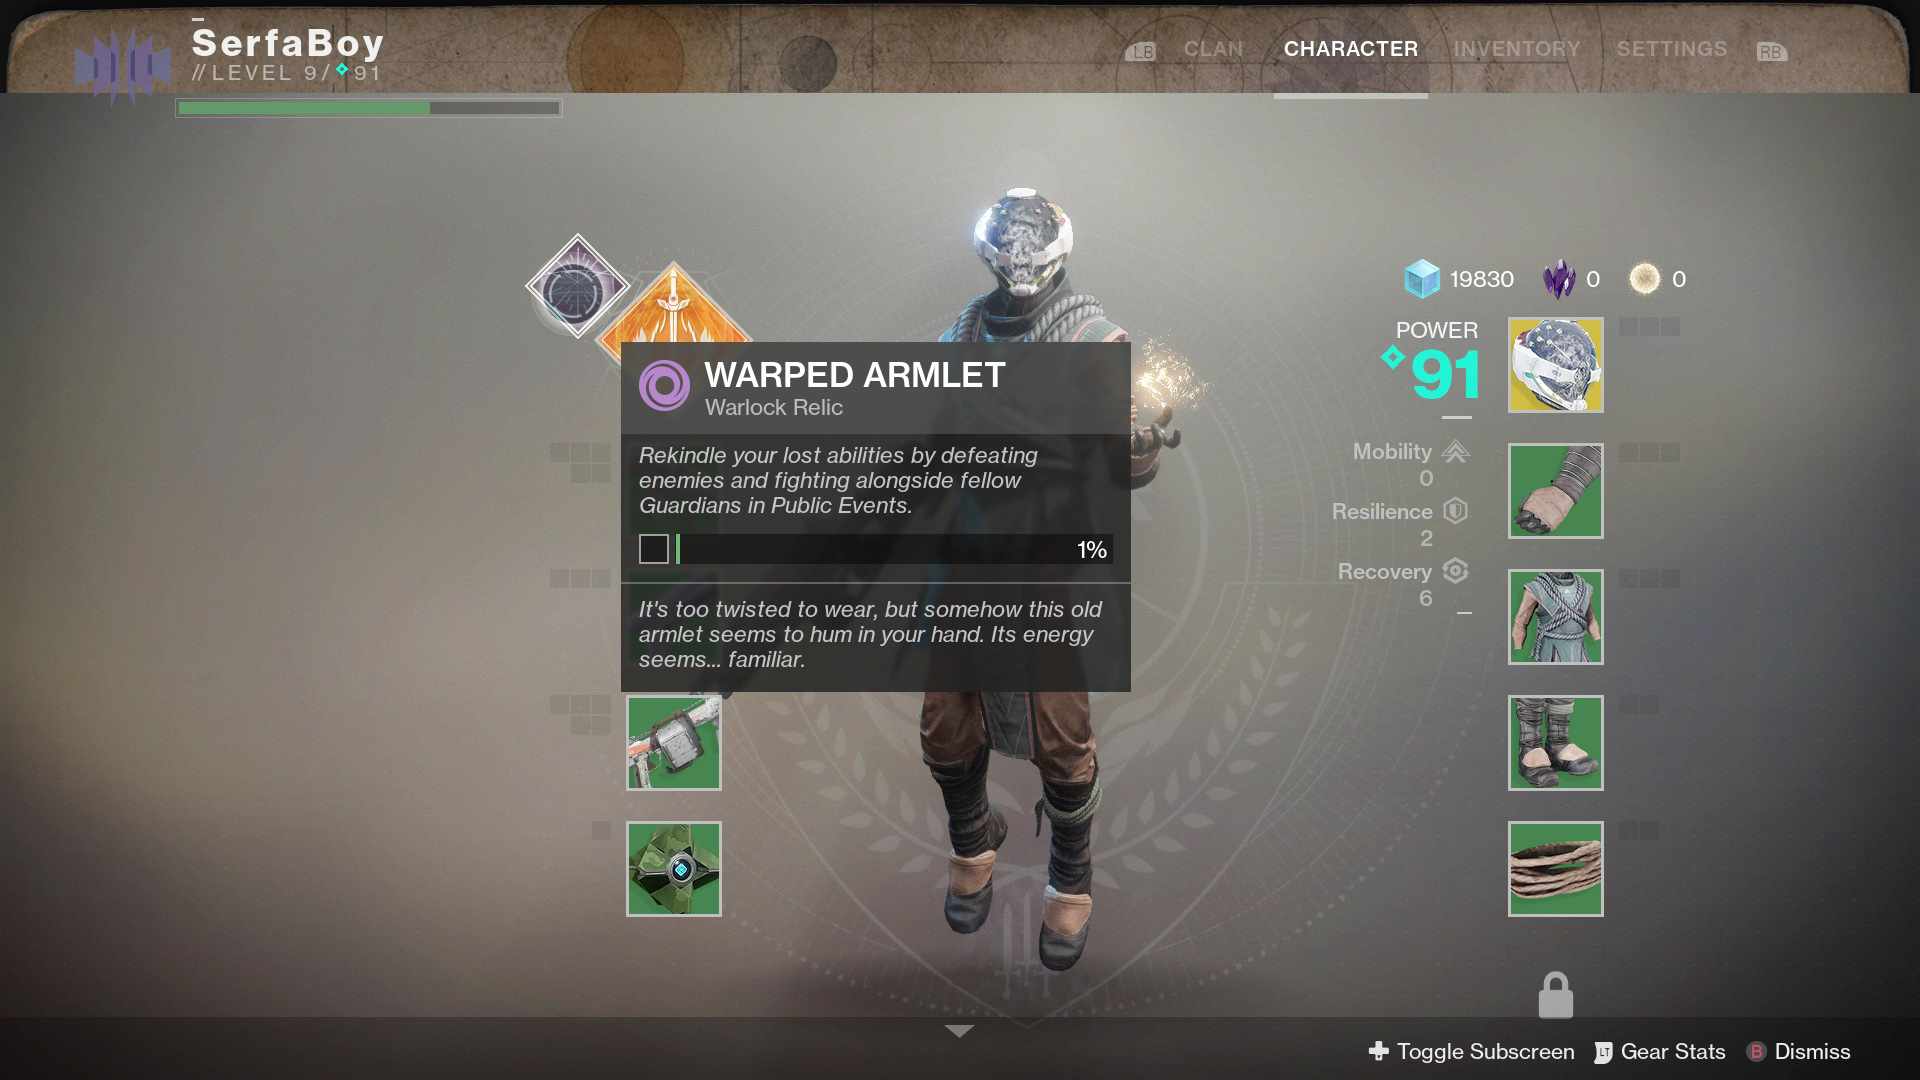 Unlocking the second subclass requires finding a special quest item for your class.